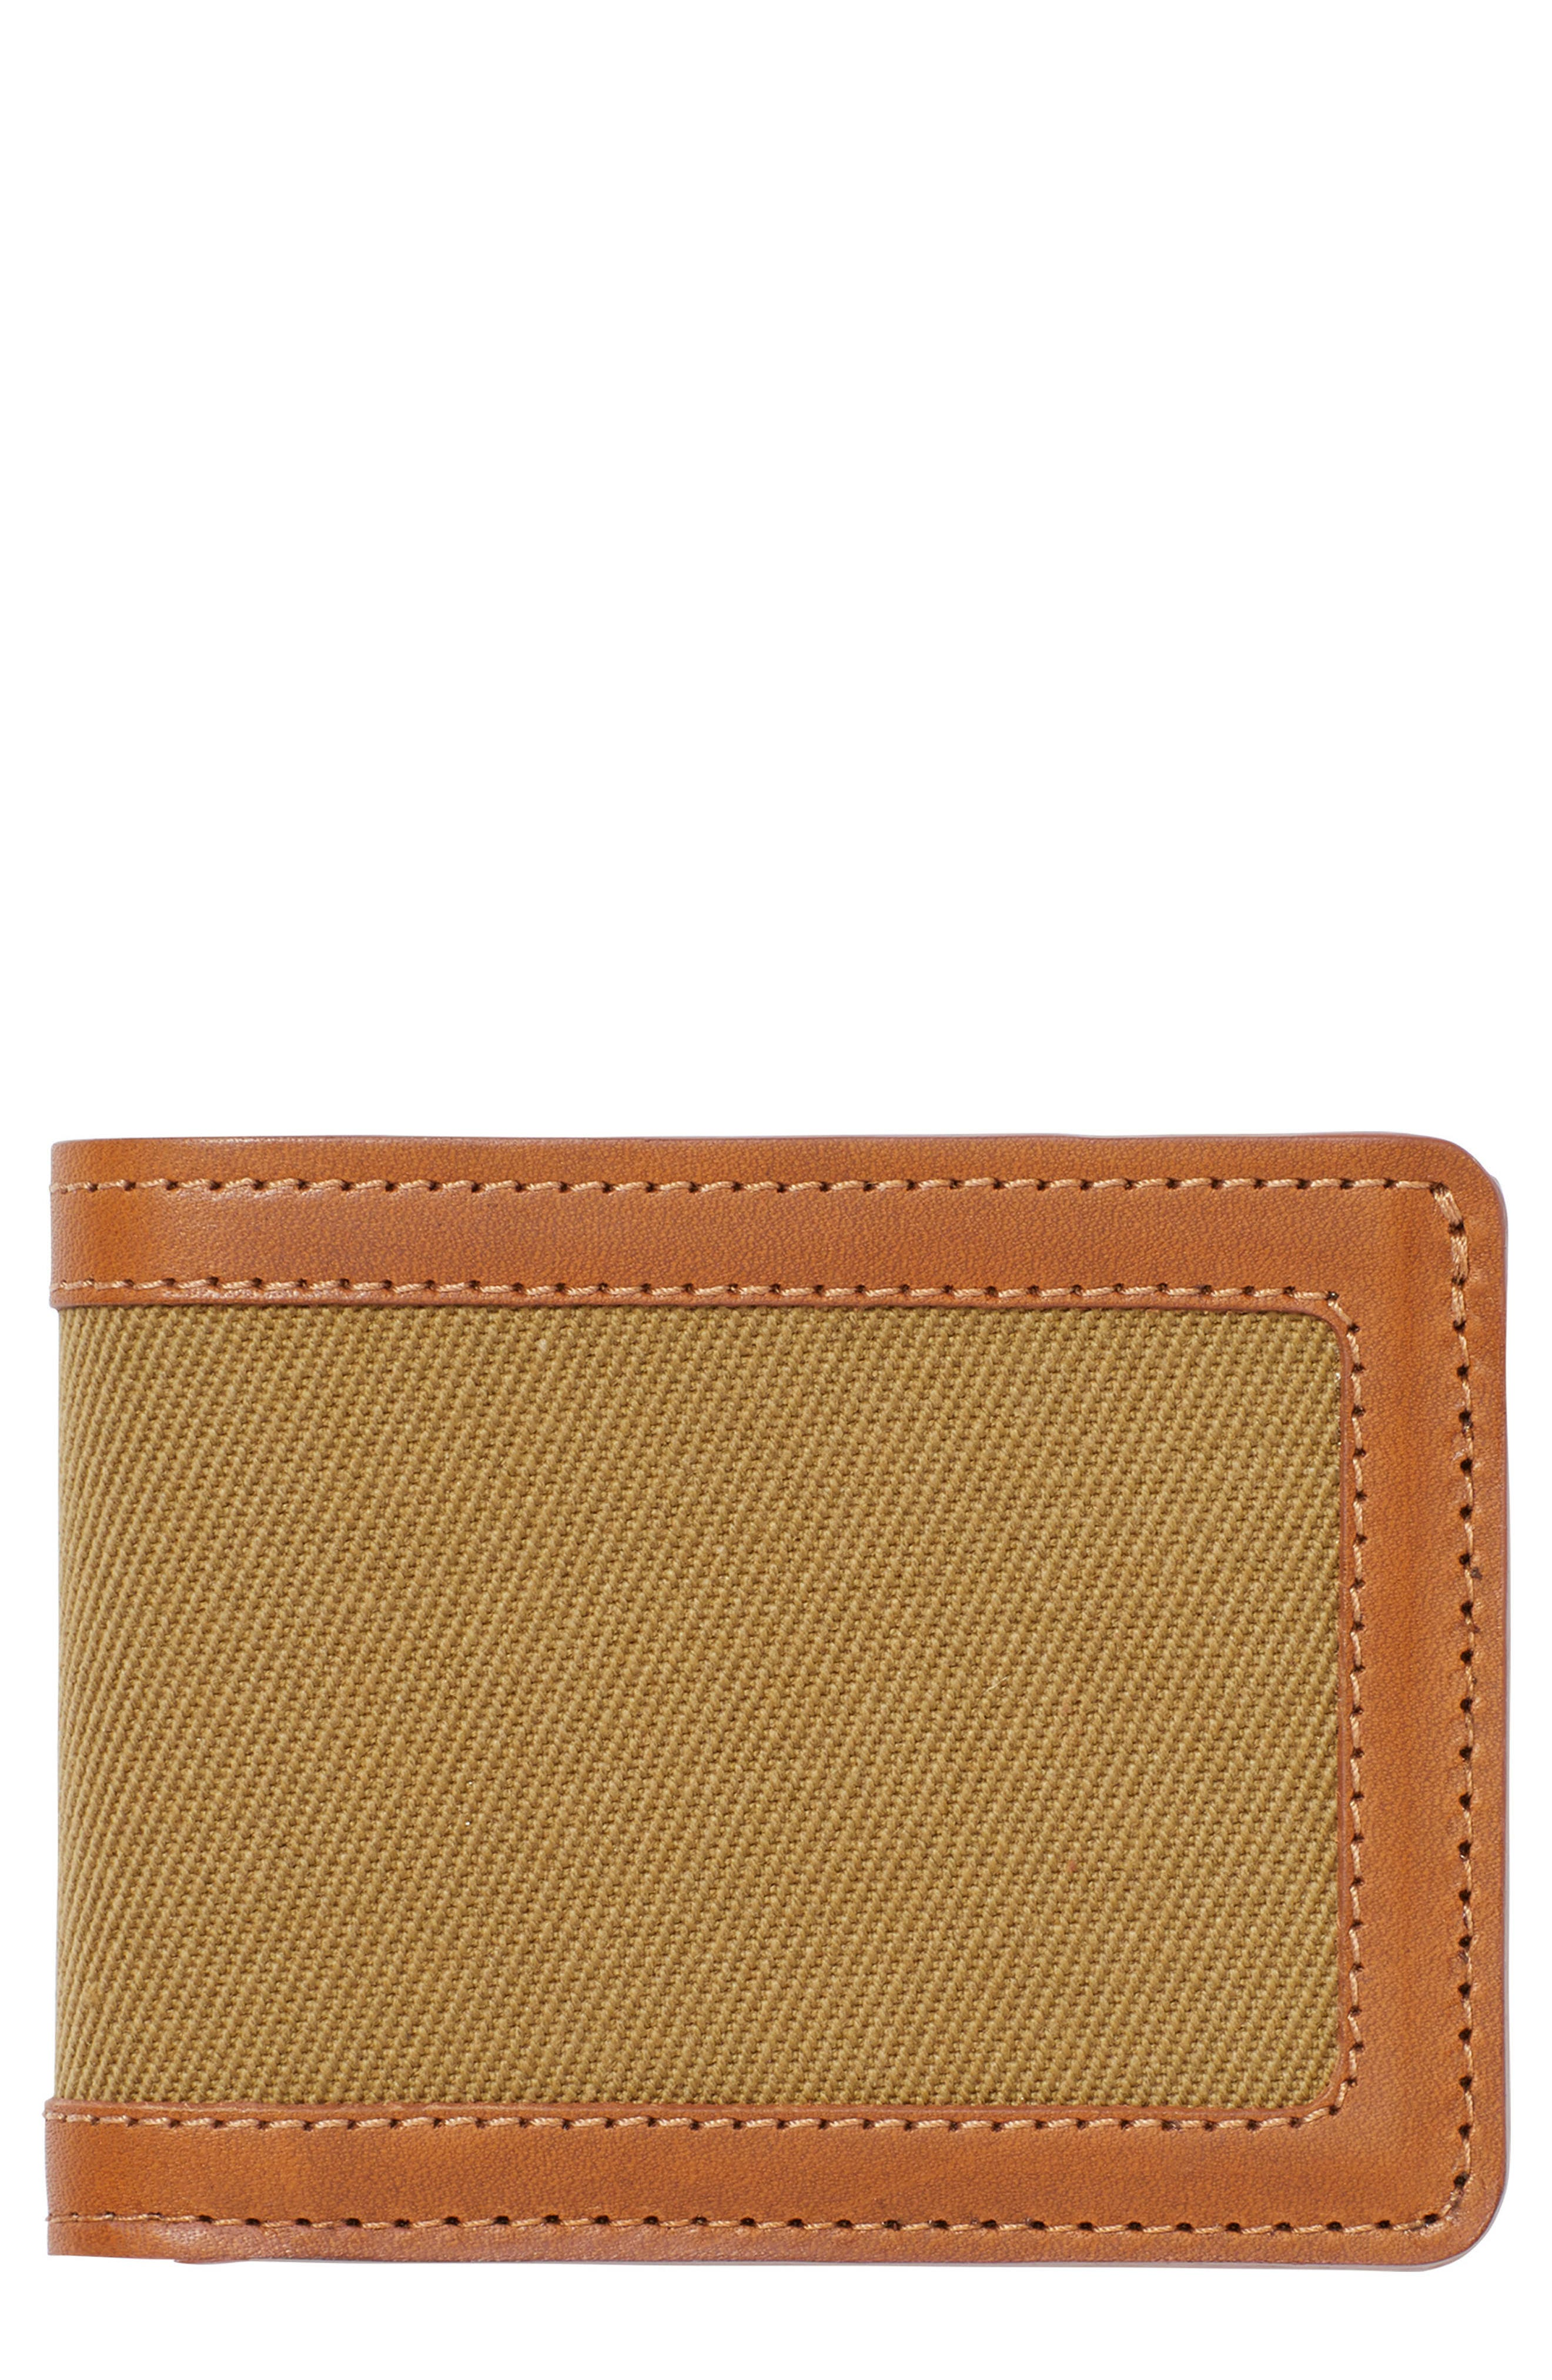 Outfitter Leather & Canvas Bifold Wallet,                             Main thumbnail 1, color,                             TAN